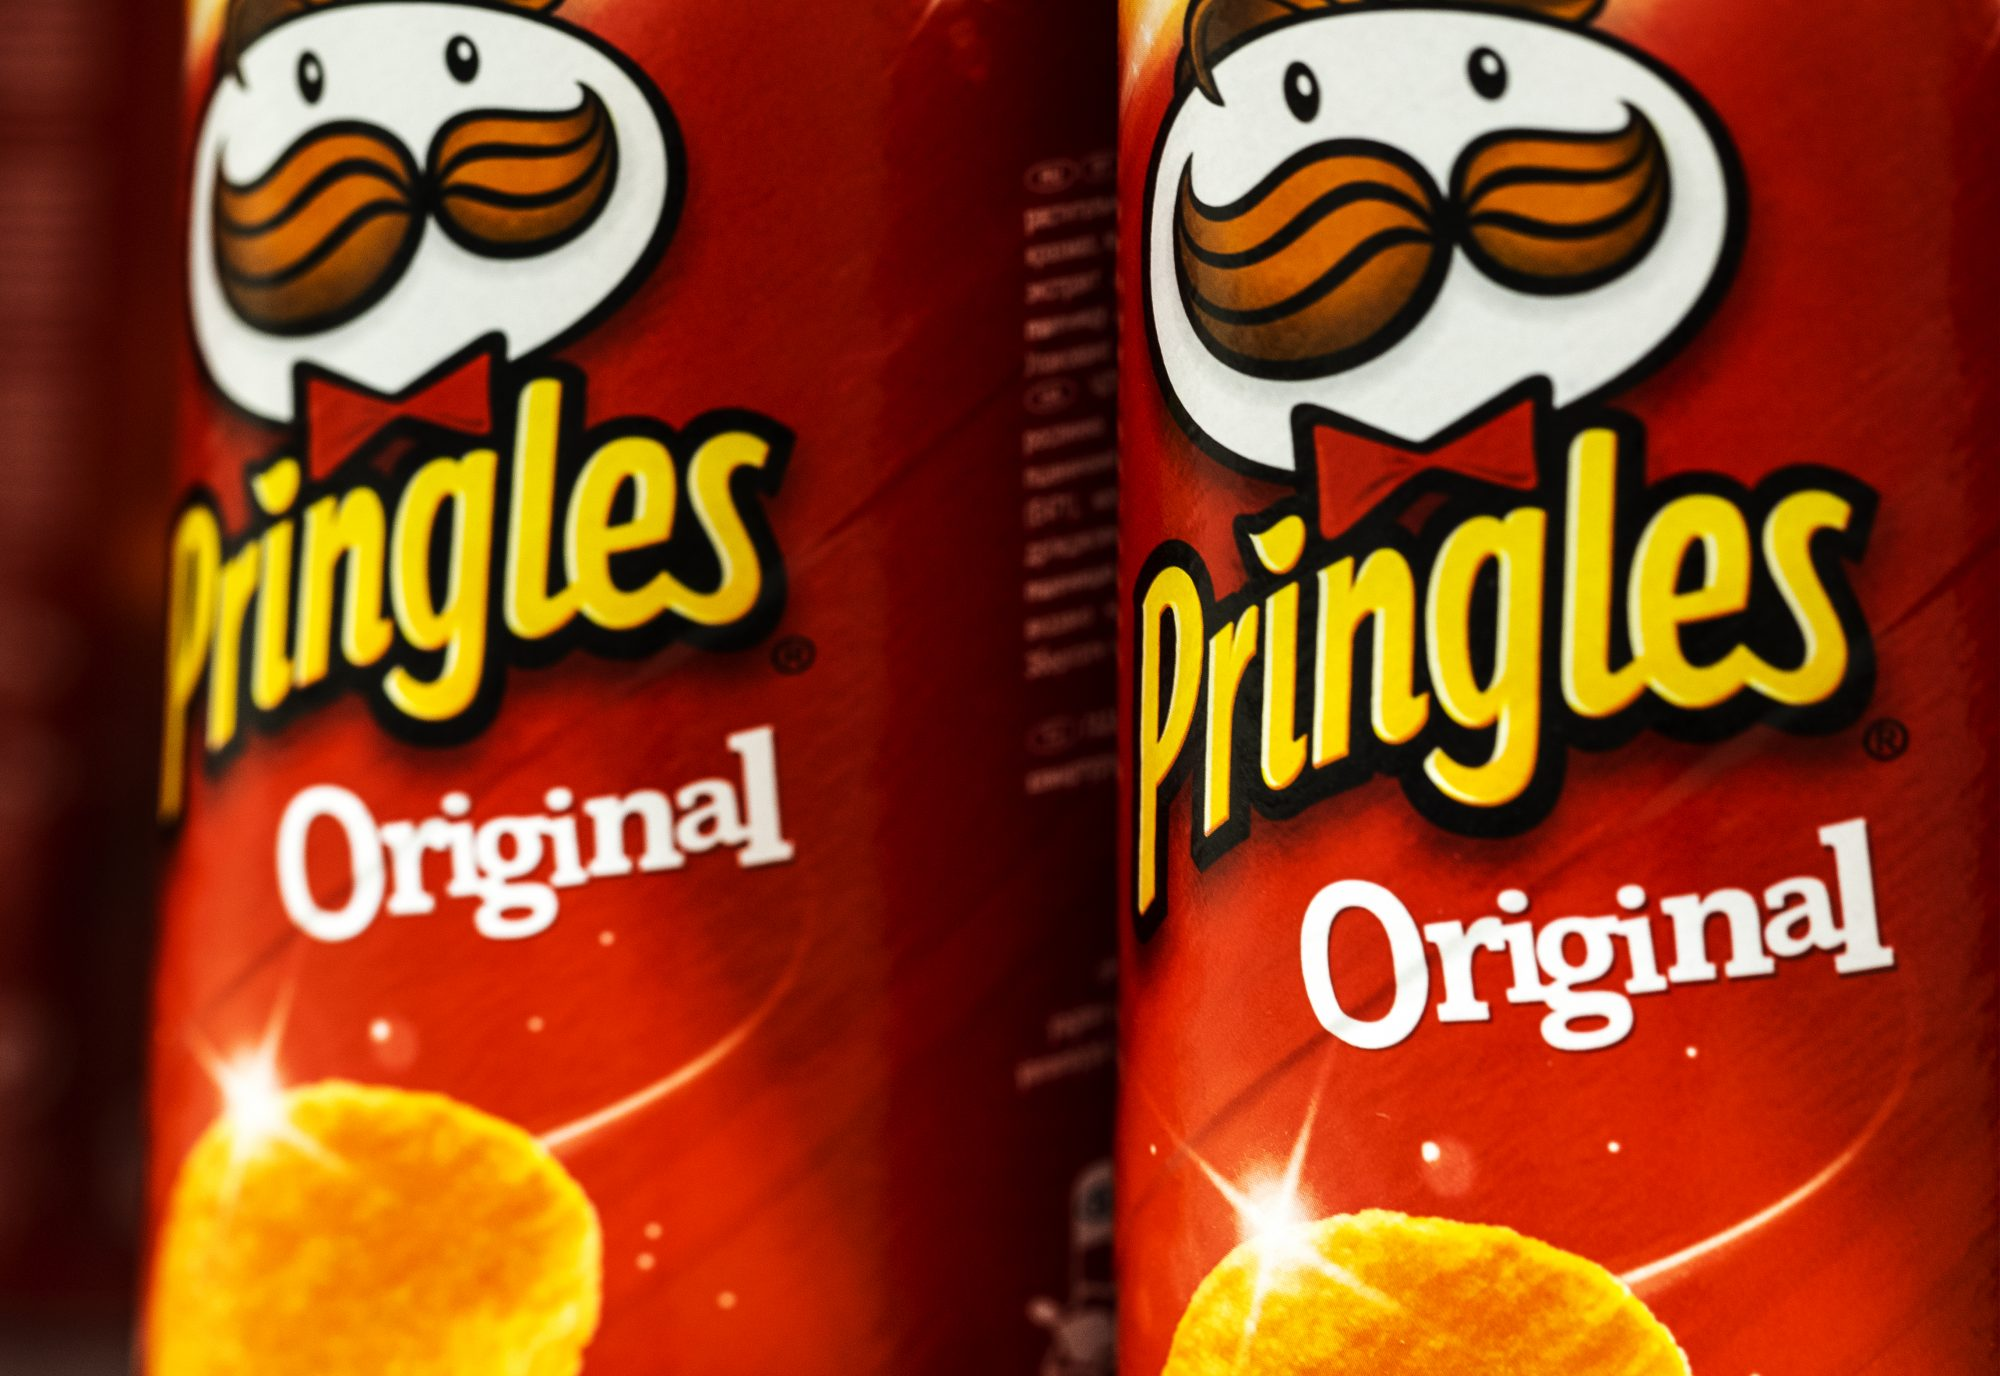 Pringles' New Thanksgiving Flavors Are So Good, They Sold Out in 41 Minutes